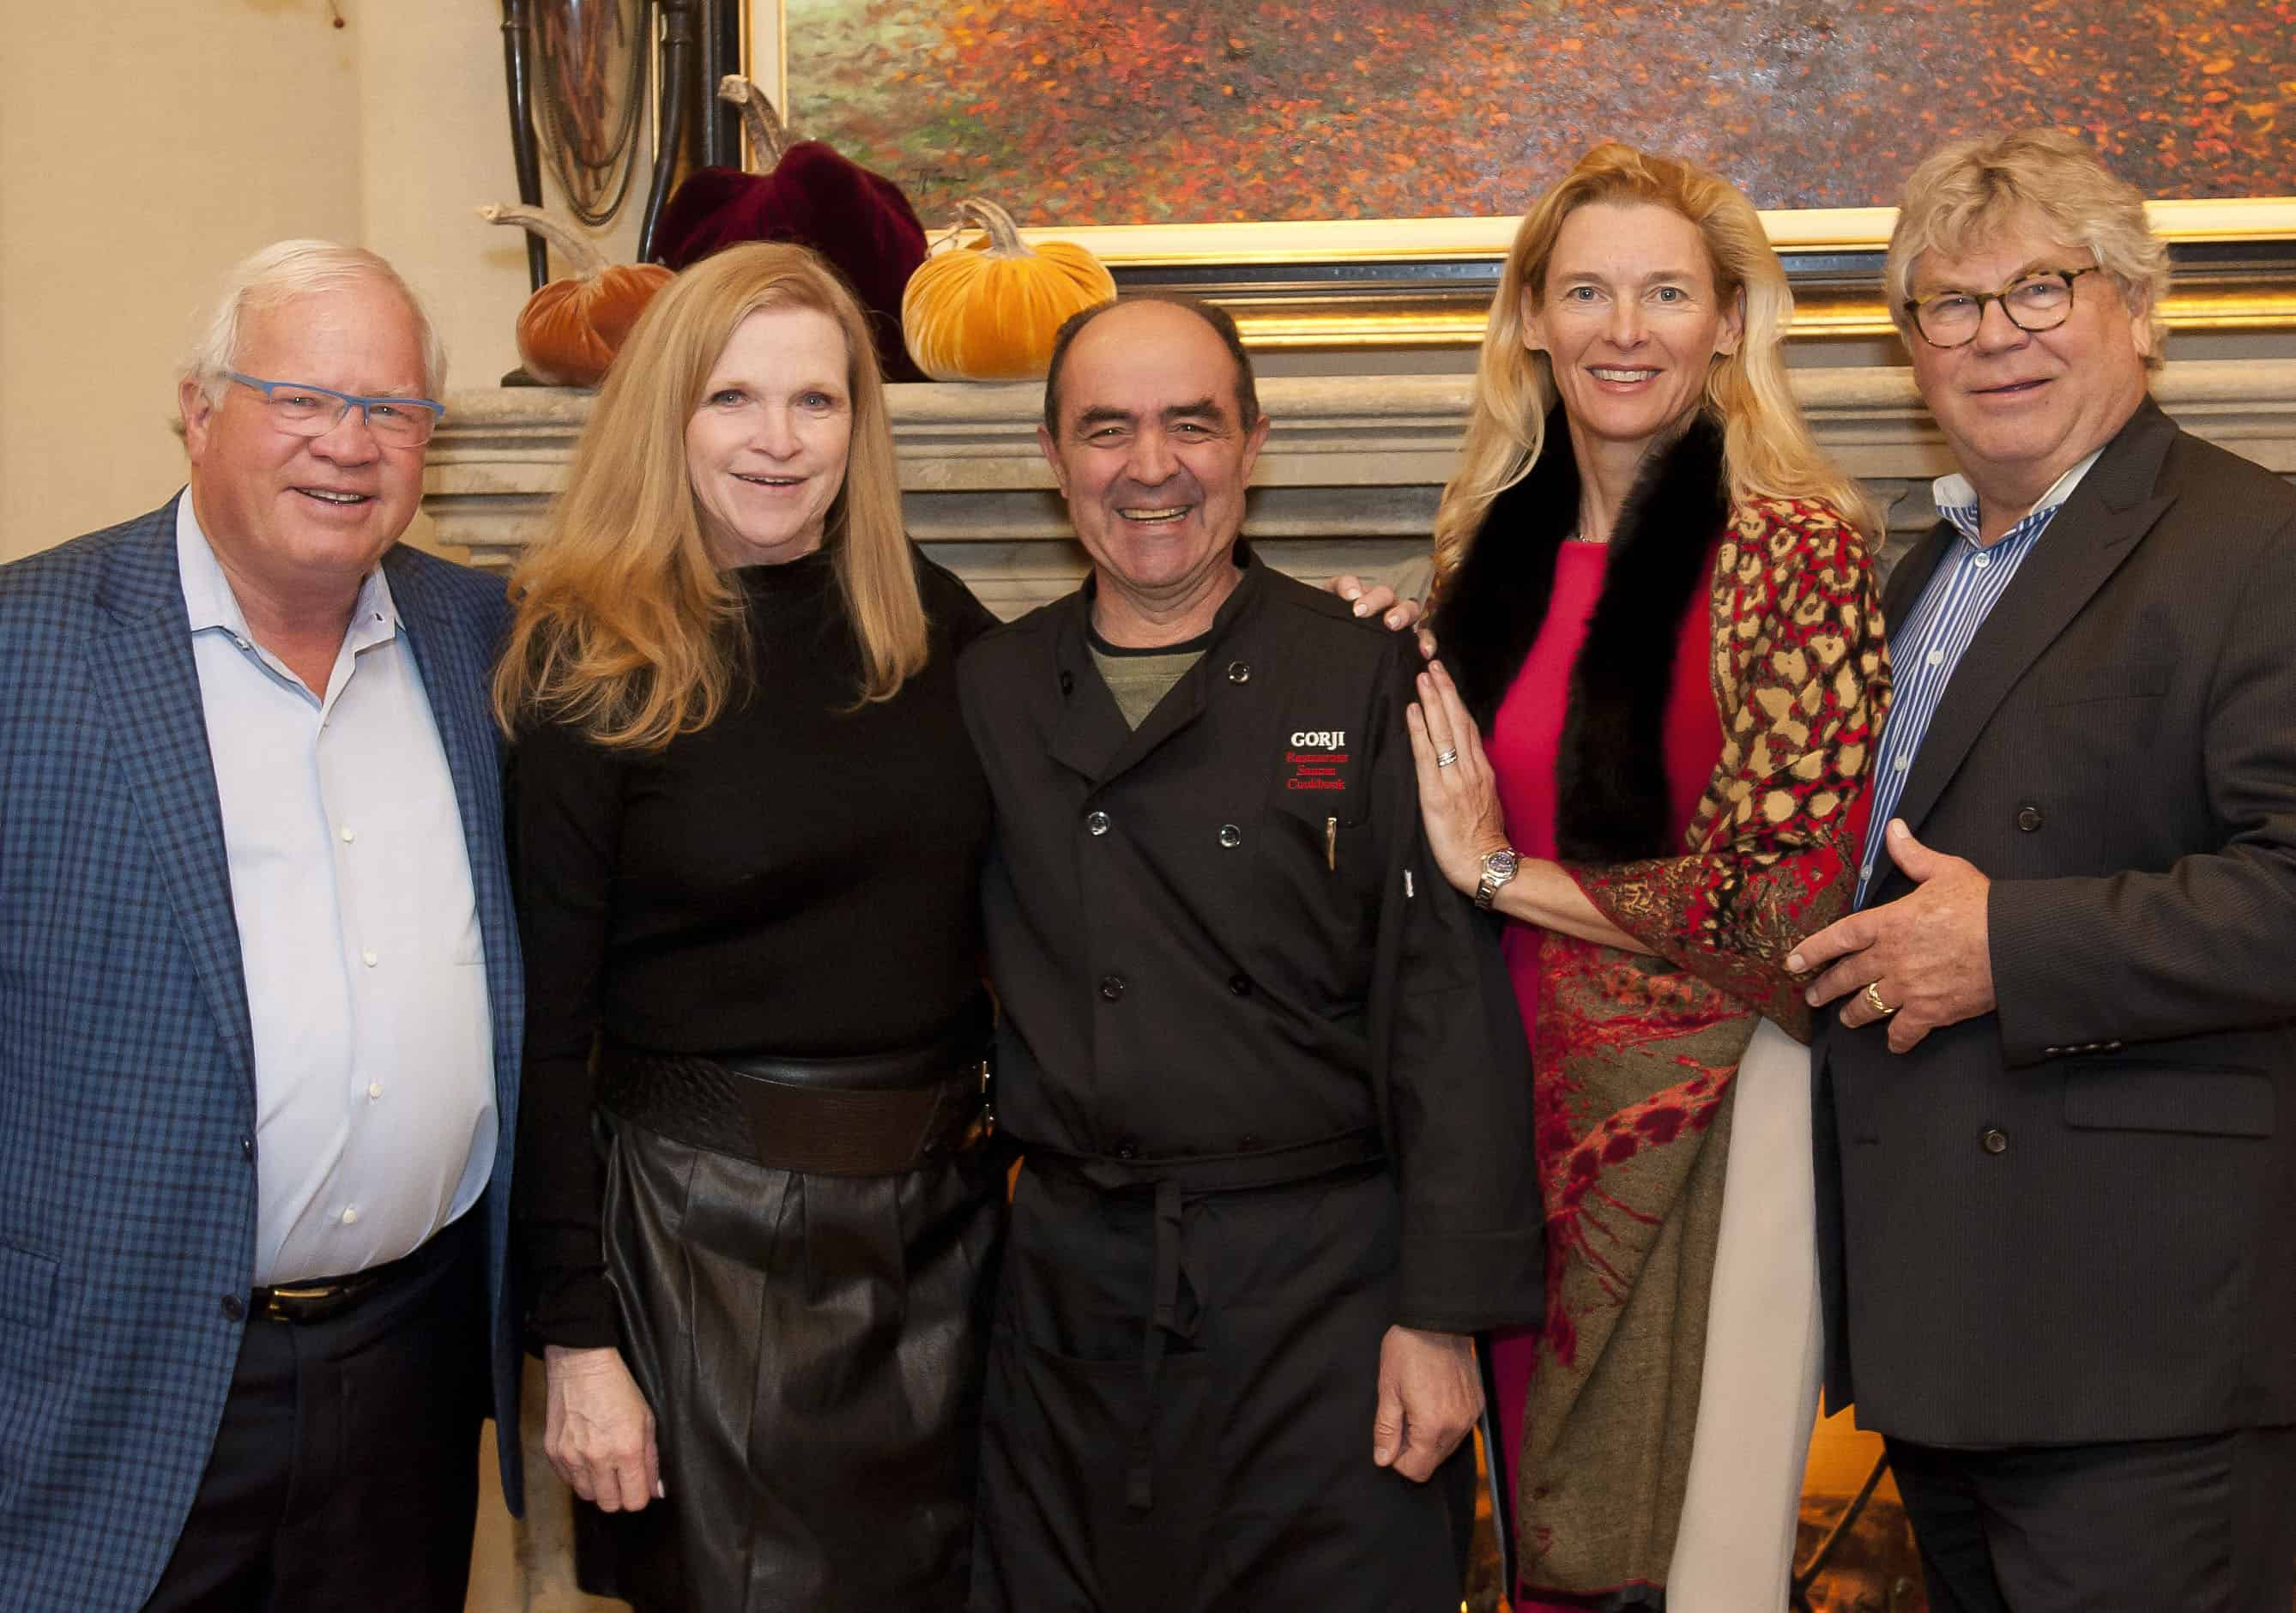 Gorji Honorary Chef Chair for Symphony of Chefs 2019 and Vinette & Mike Montgomery, Kaari & James K. Wicklund, Kaari & James K. Wicklund, Event Co-Chairs